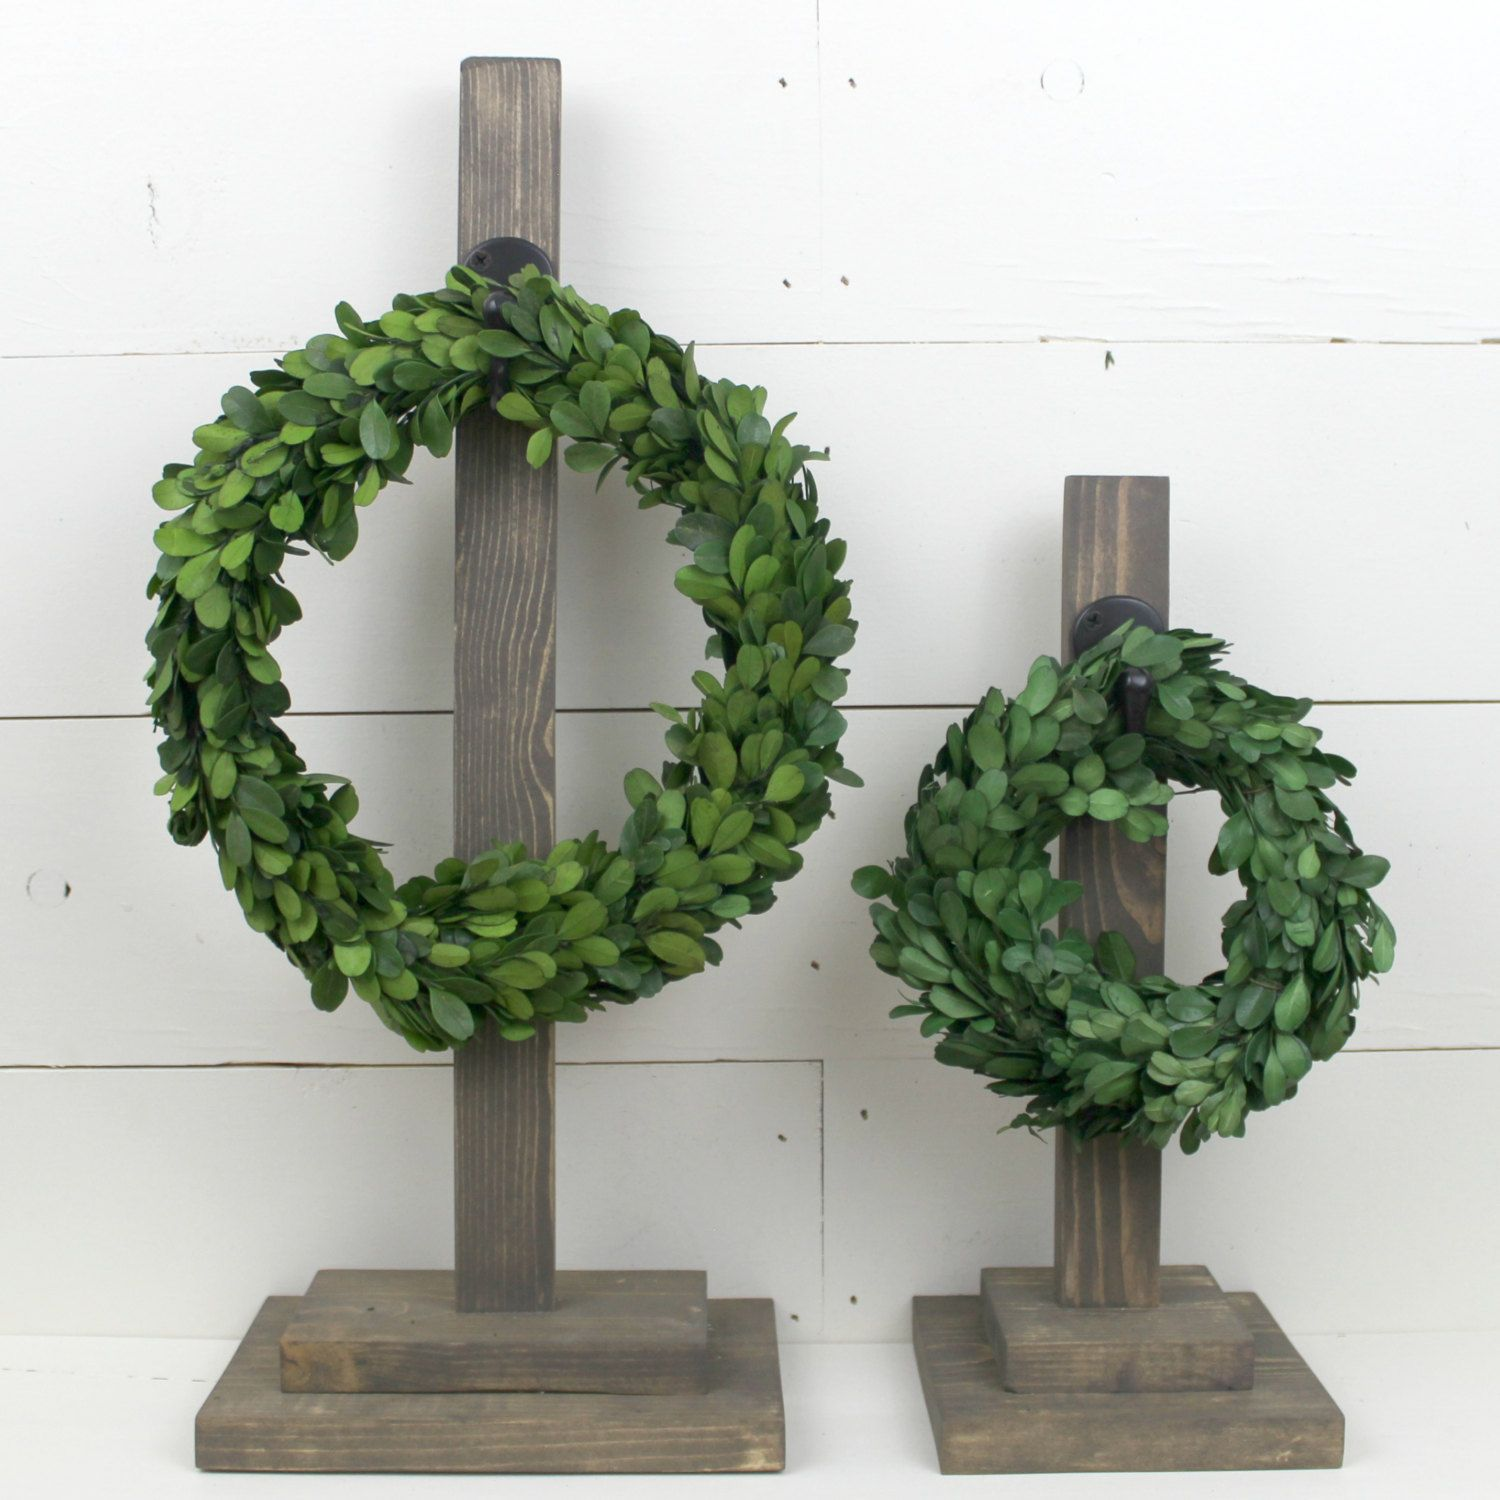 Wreath Holder 20 Wood Wreath Stand Holder With Hook Wreath Optional By Theposhpearshop On Etsy Wreath Boxwoodwre Wood Wreath Wreath Stand Wreath Holder